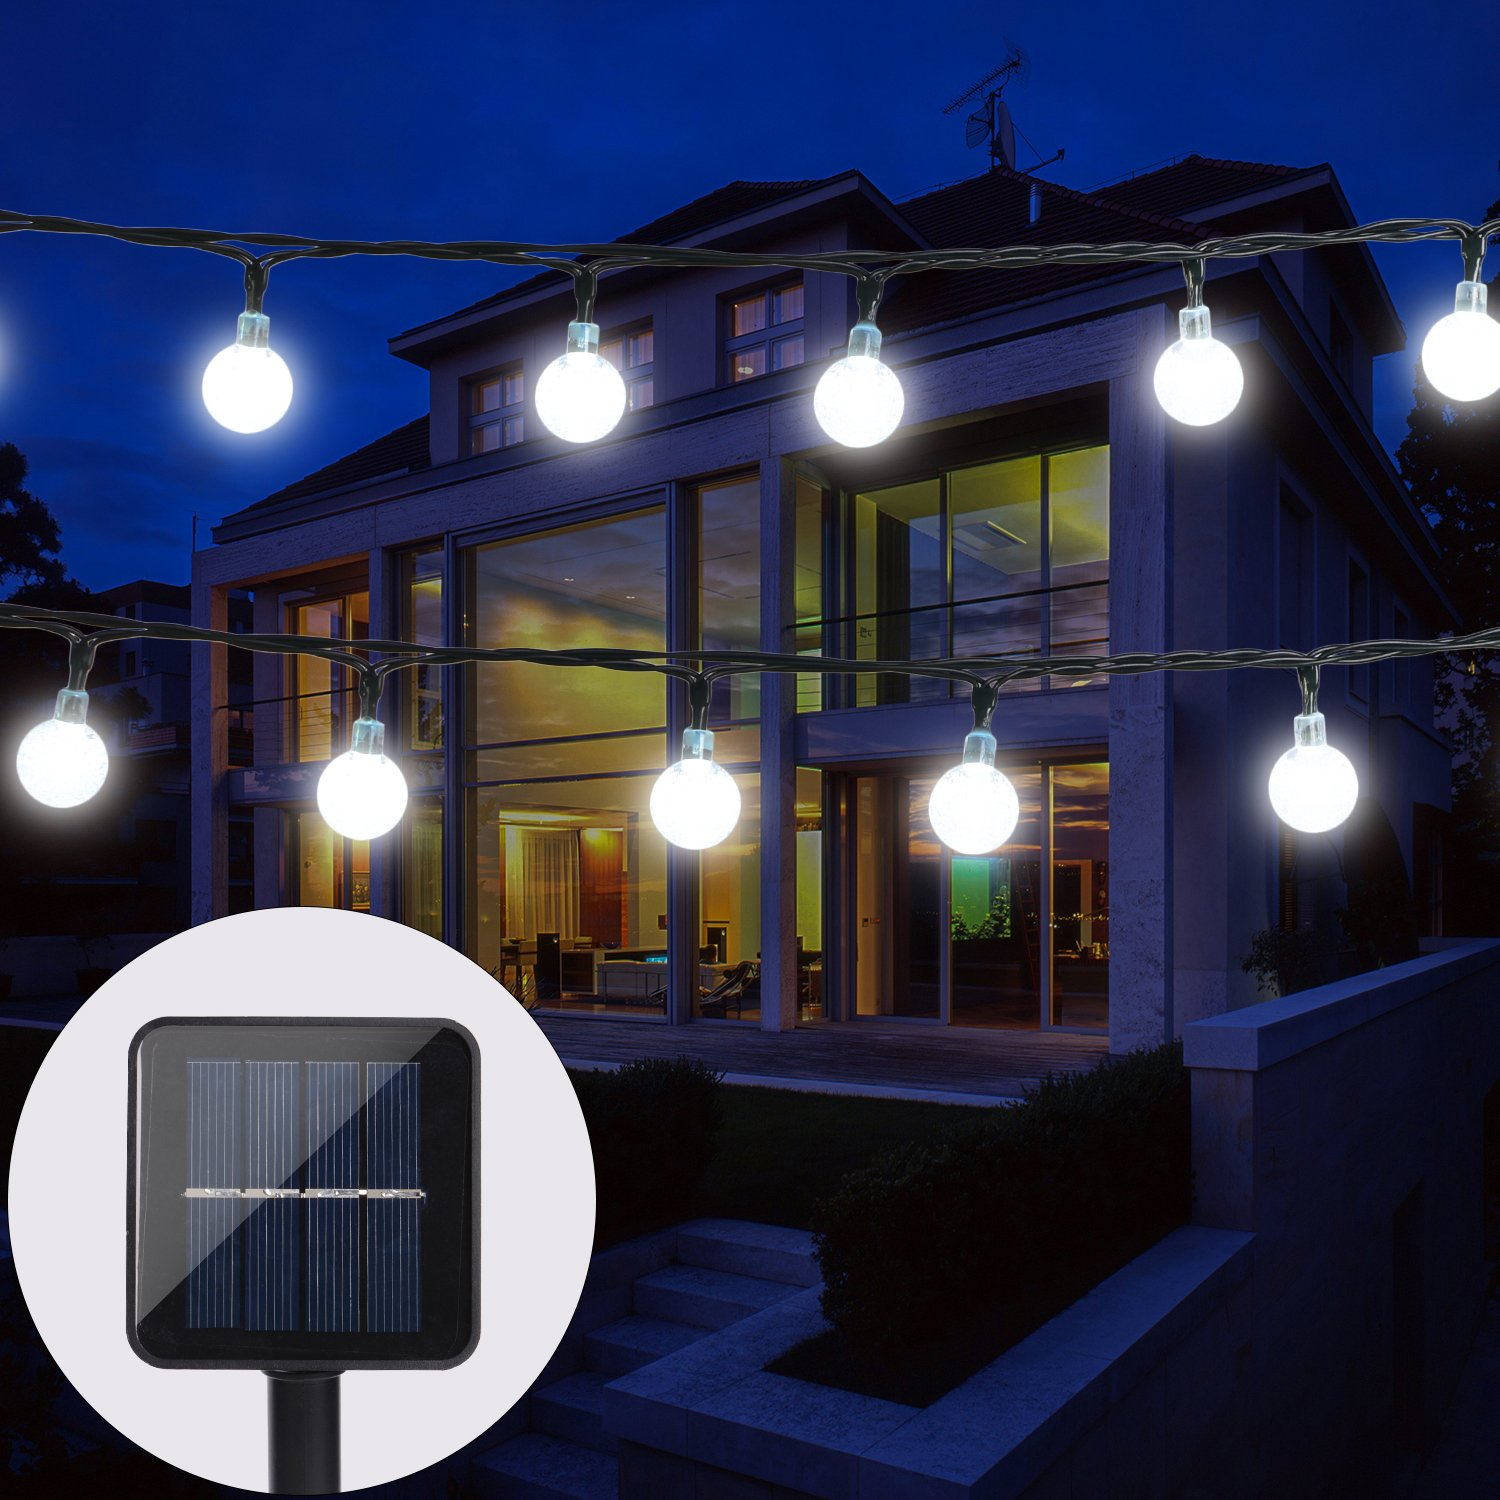 BAOANT Solar String Lights, 30 LED Starry Fairy Lights, 20 ft, Waterproof 1.2 V Portable with Light Sensor for Patio, Garden, Home, Wedding, Pathway, Party Decorations 2 Modes(Cool White) [Energy Class A+++] Solar Lichterkette